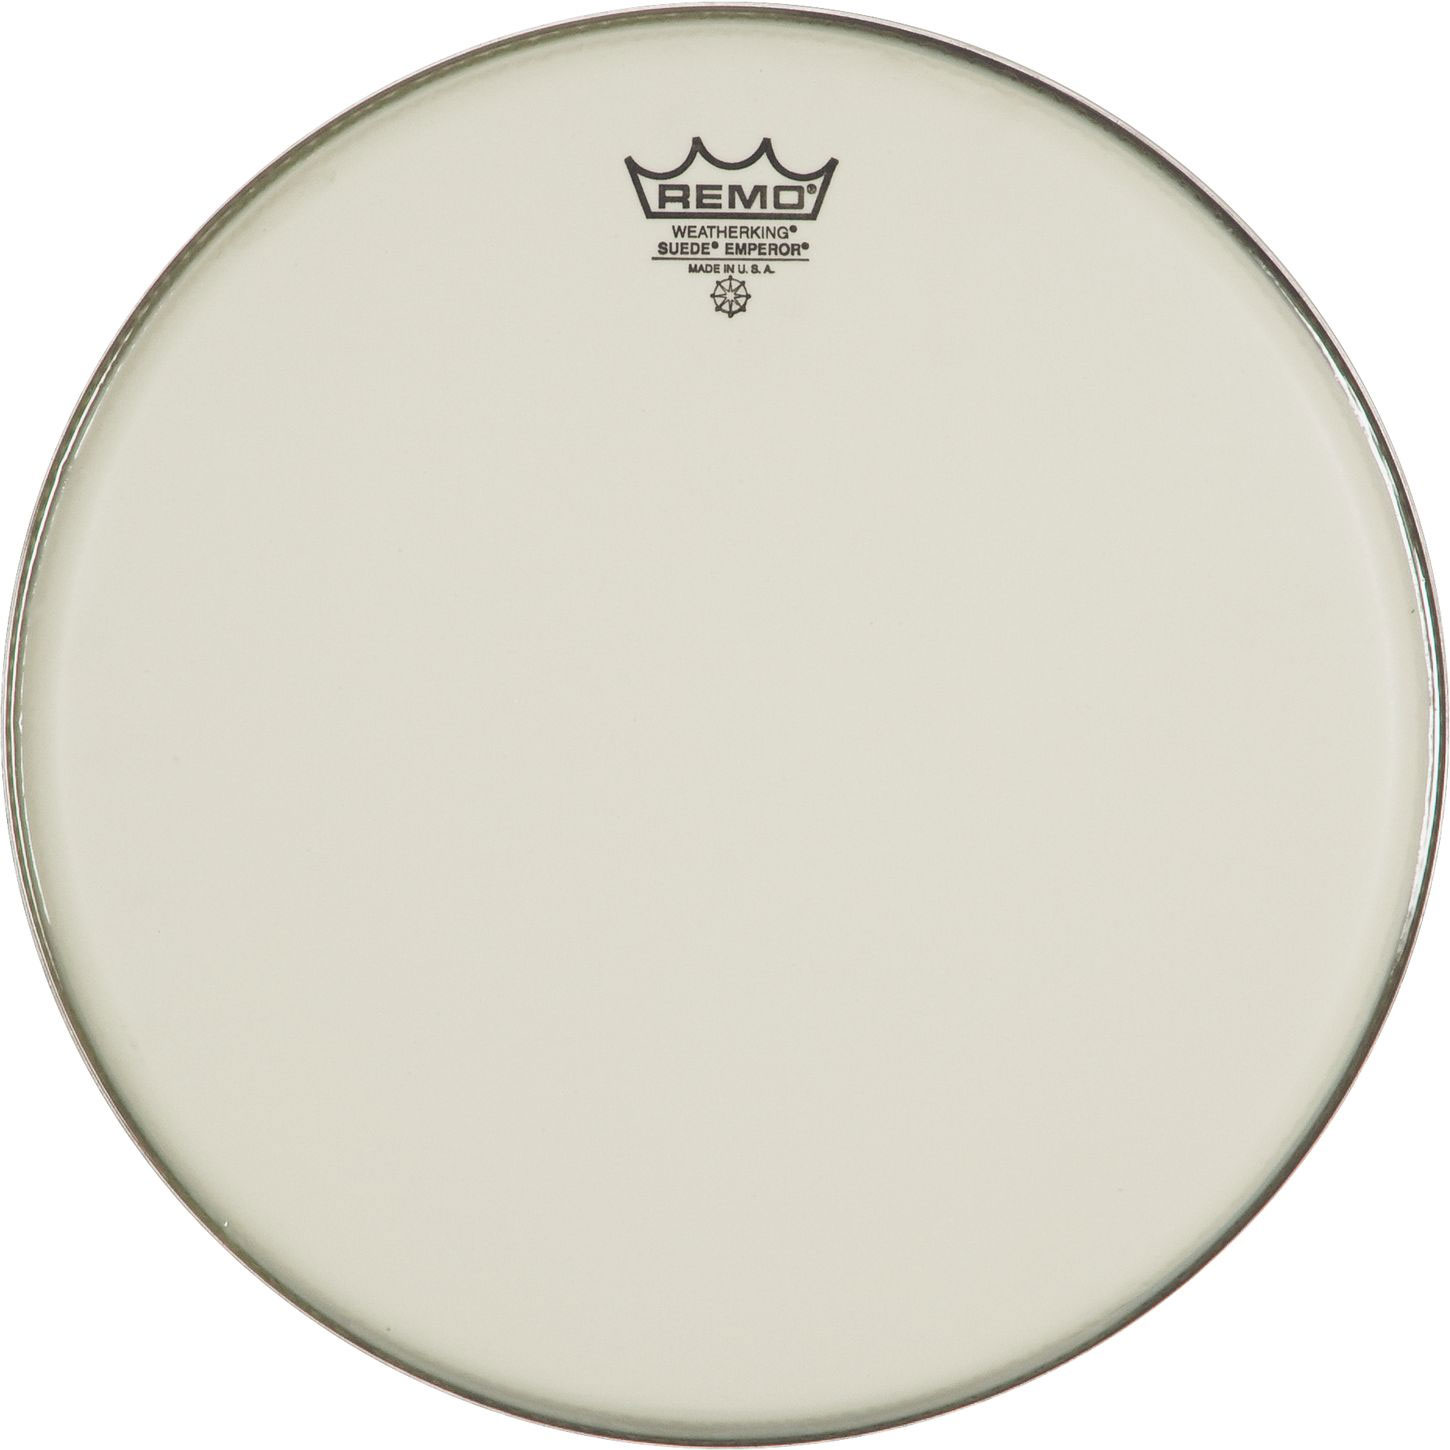 "Remo 12"" Emperor Suede Drum Head"